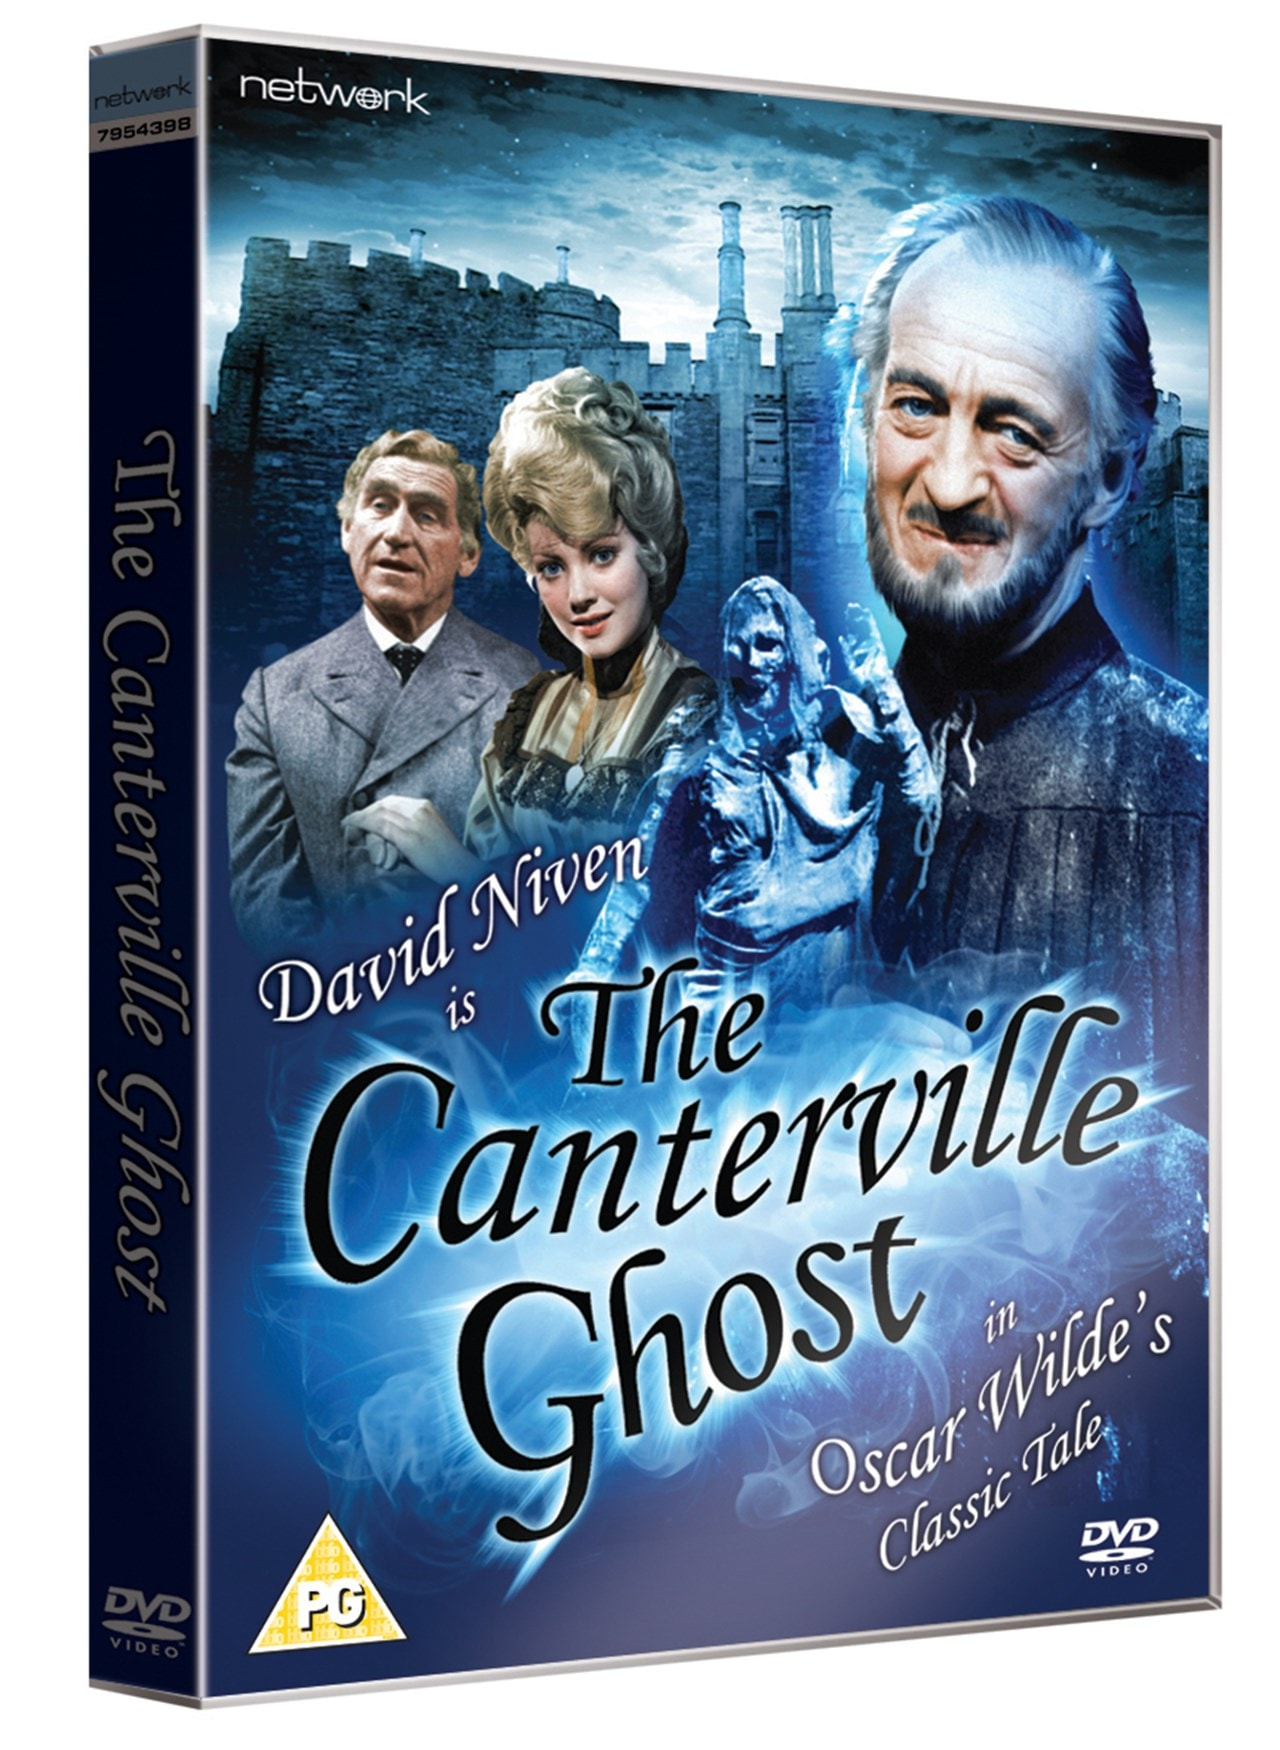 The Canterville Ghost - 2